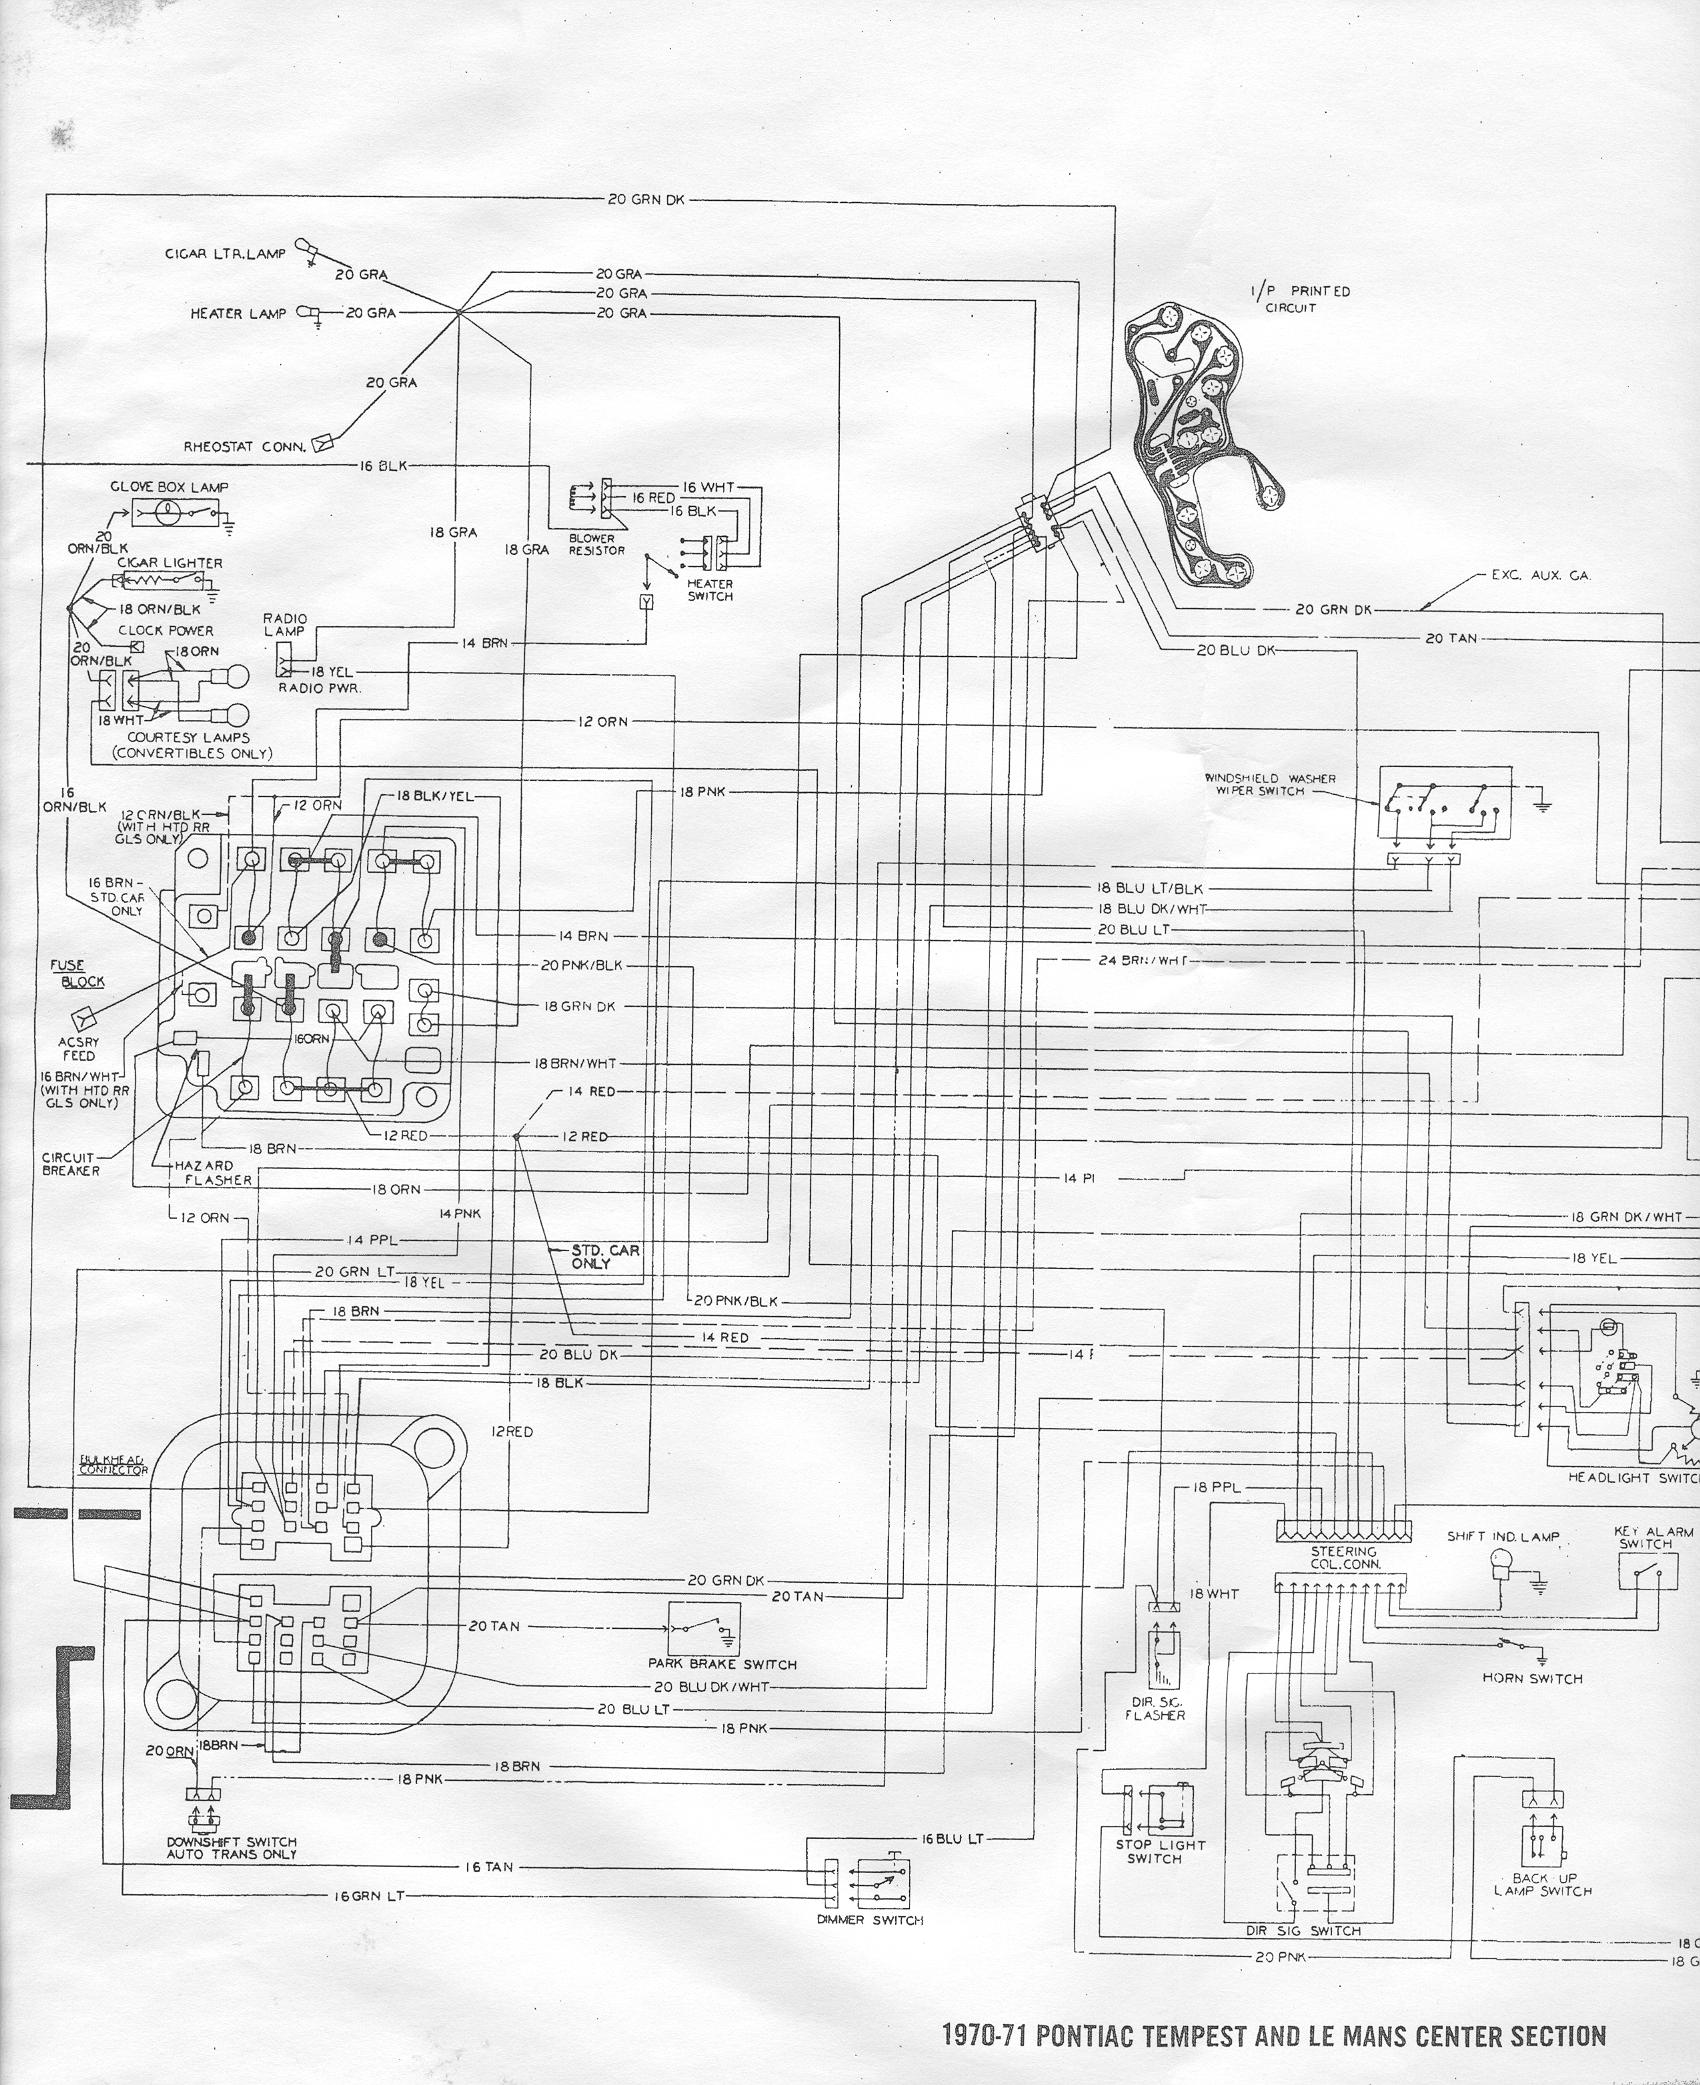 gto wiring diagram scans pontiac gto forum jpg views 21568 size click image for larger version 70 71 gto page3